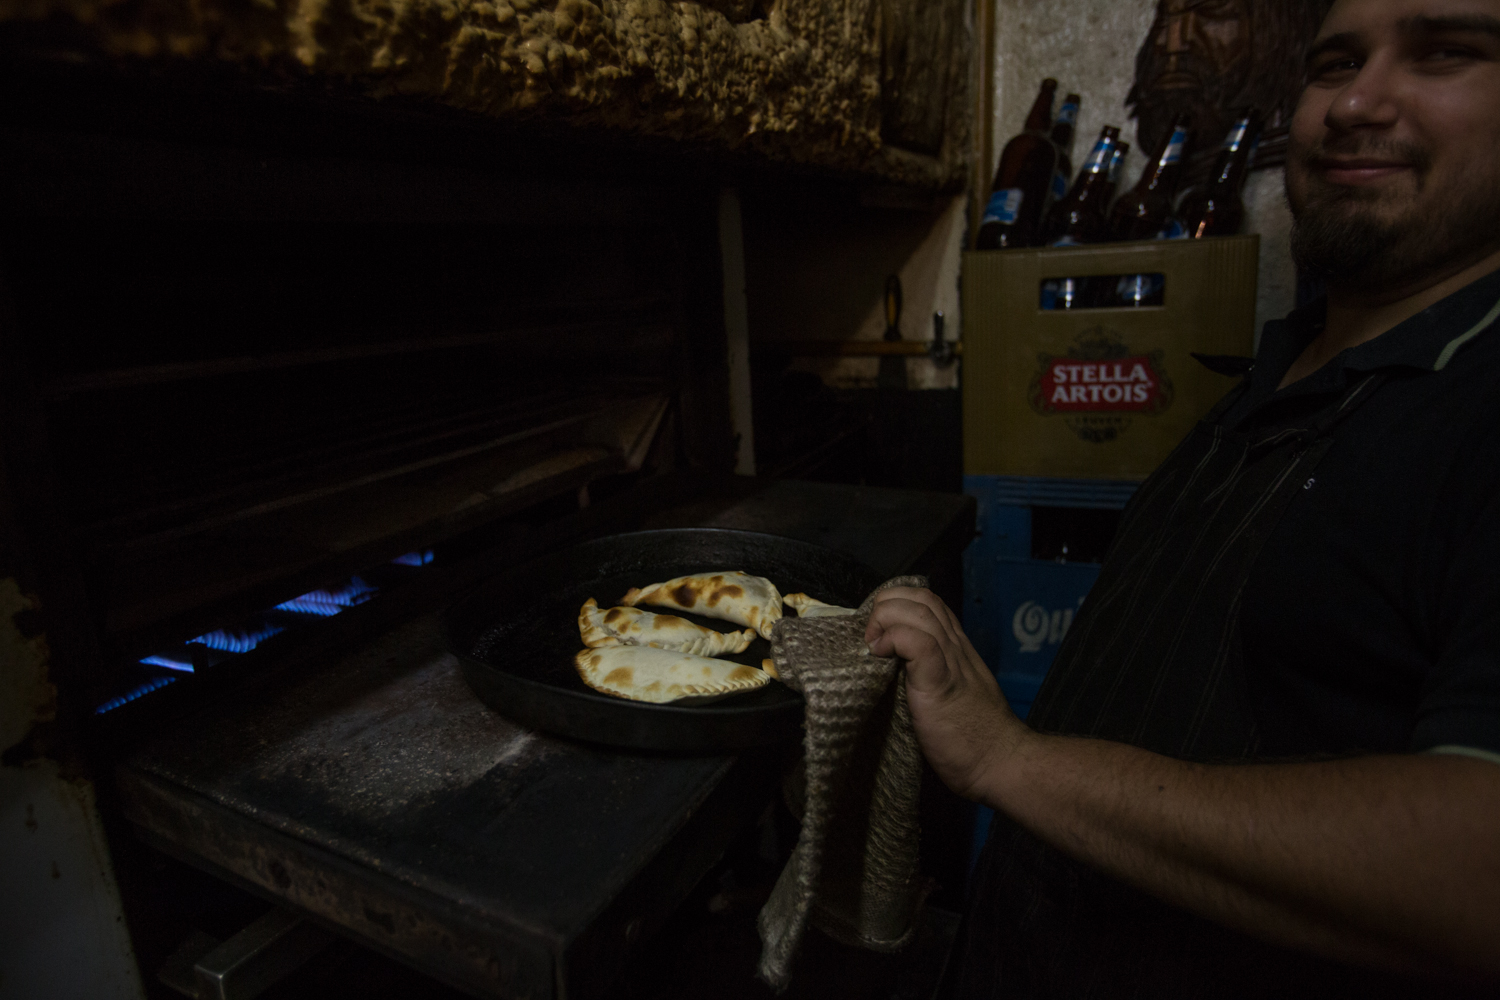 Our order as it emerged from the oven at Ña Serapia.